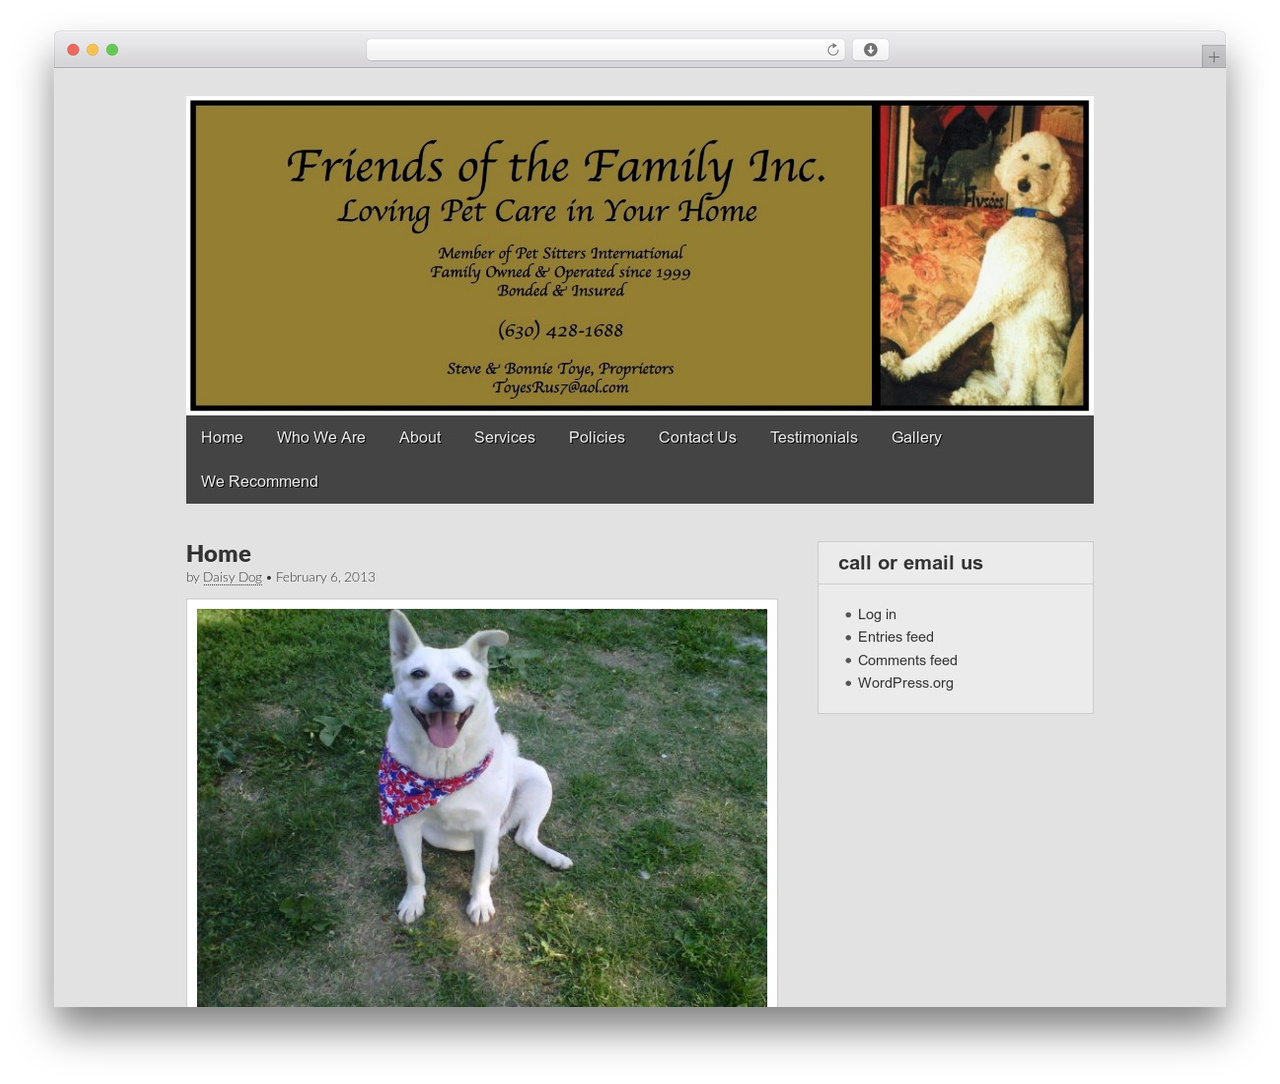 Gridiculous free WordPress theme - friendsofthefamilyinc.com